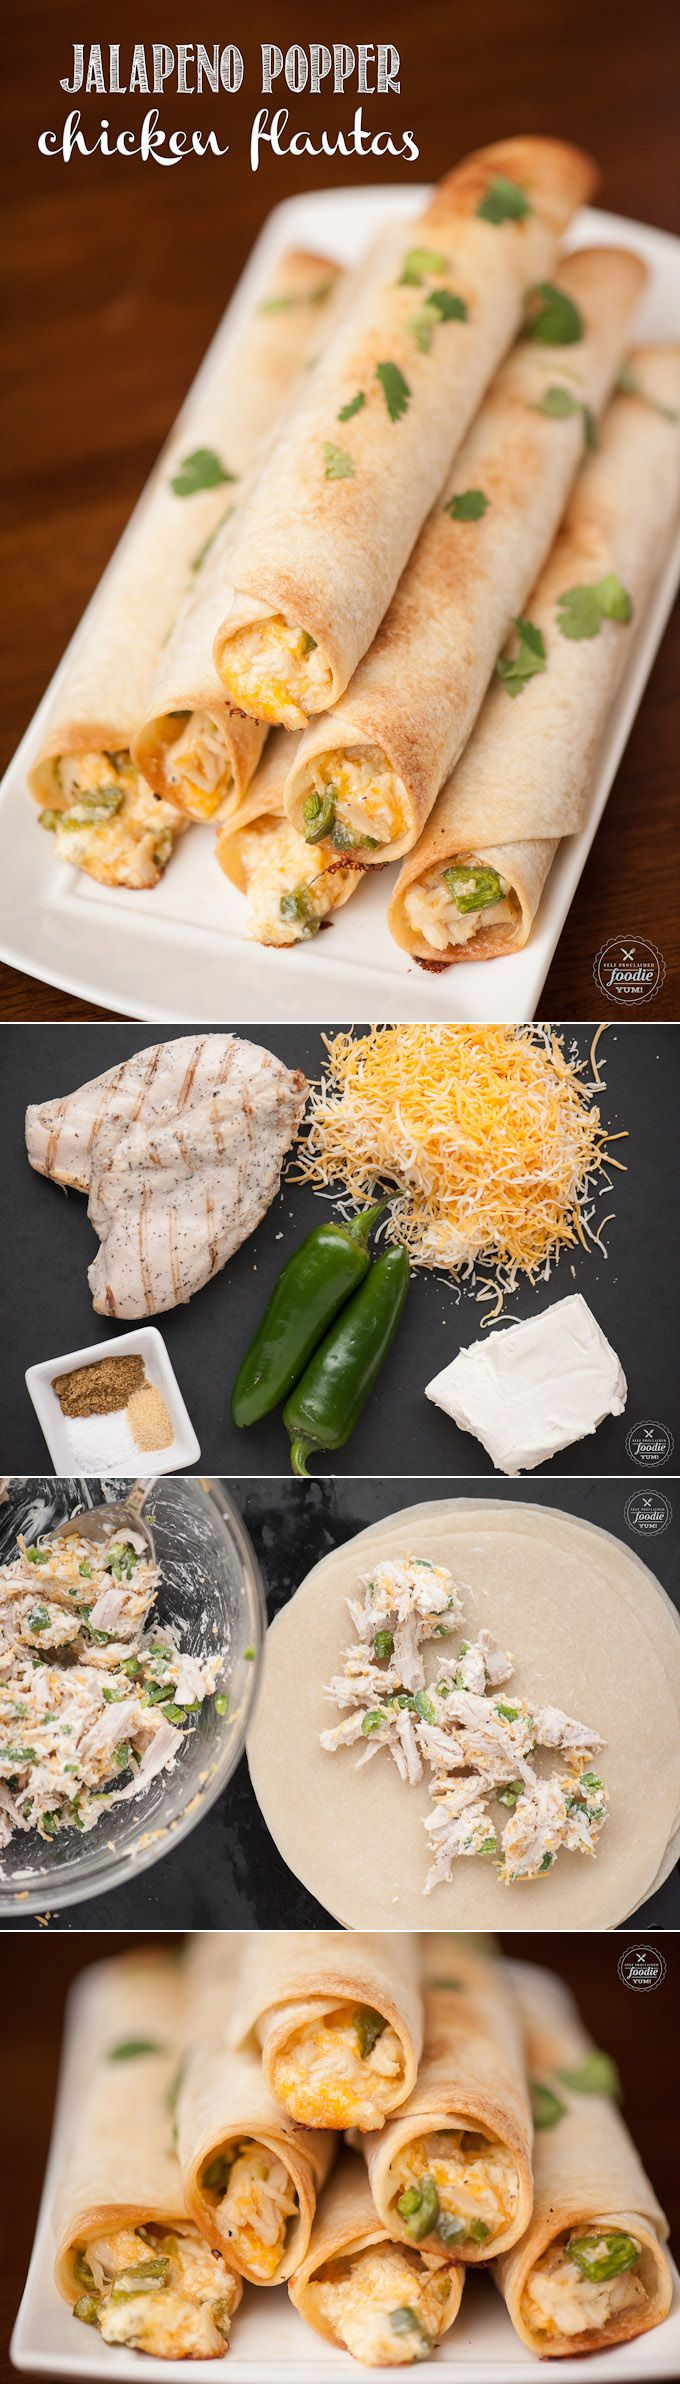 Feed a crowd at any game time party with these incredibly delicious and easy to make Jalapeno Popper Chicken Flautas finger foods.